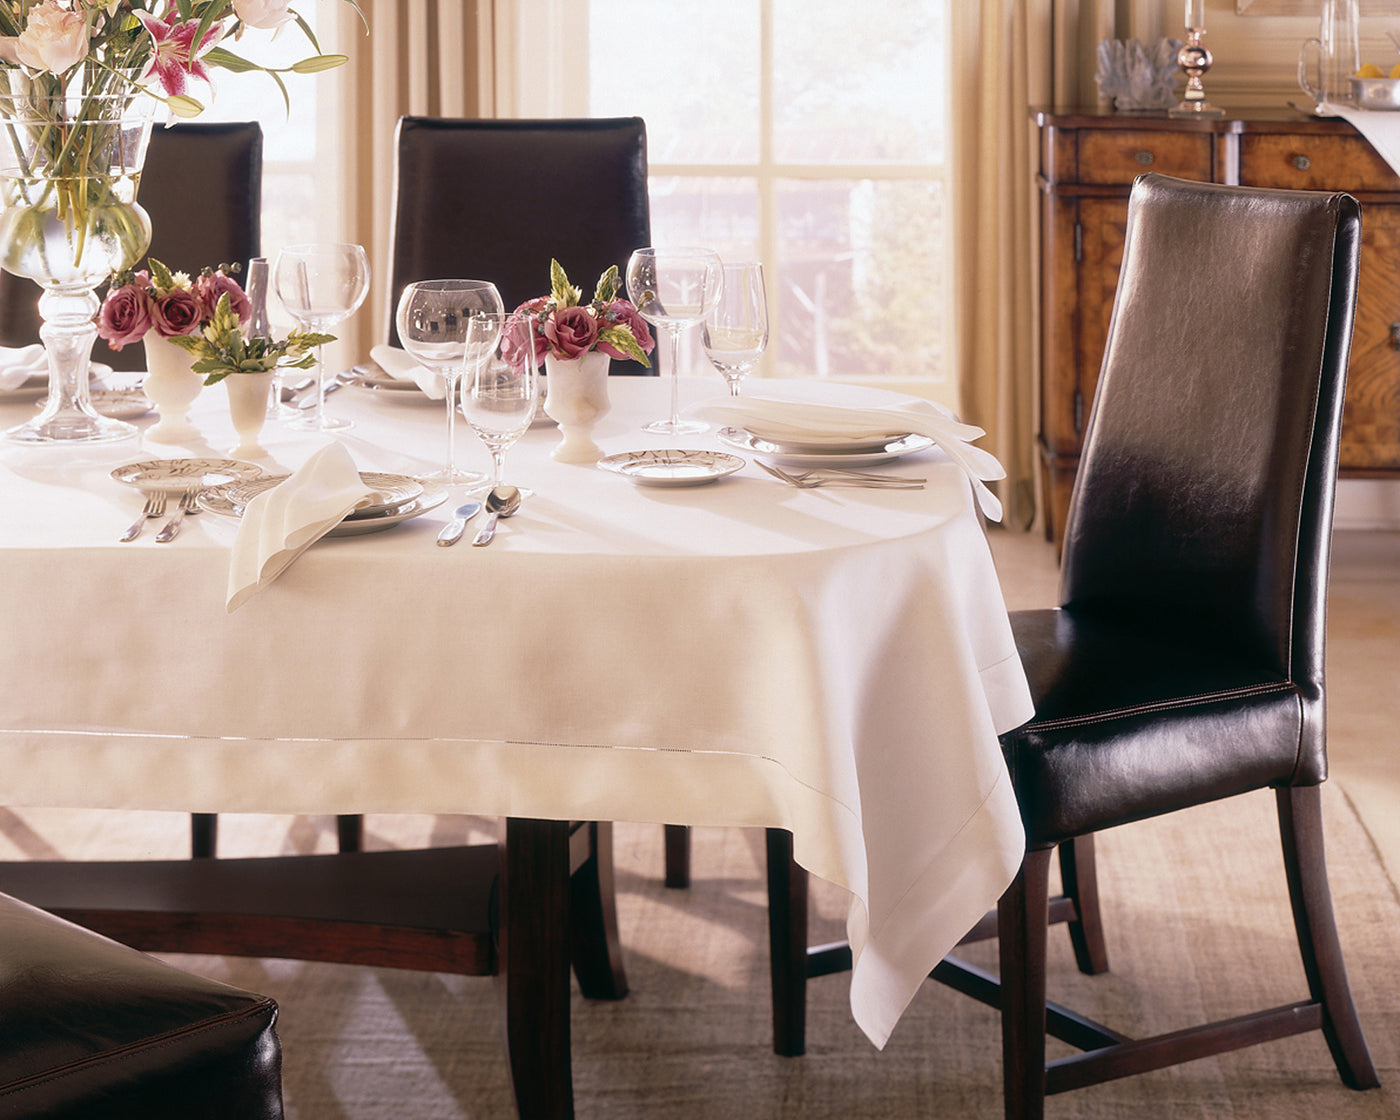 Classico Table Linens | Runner